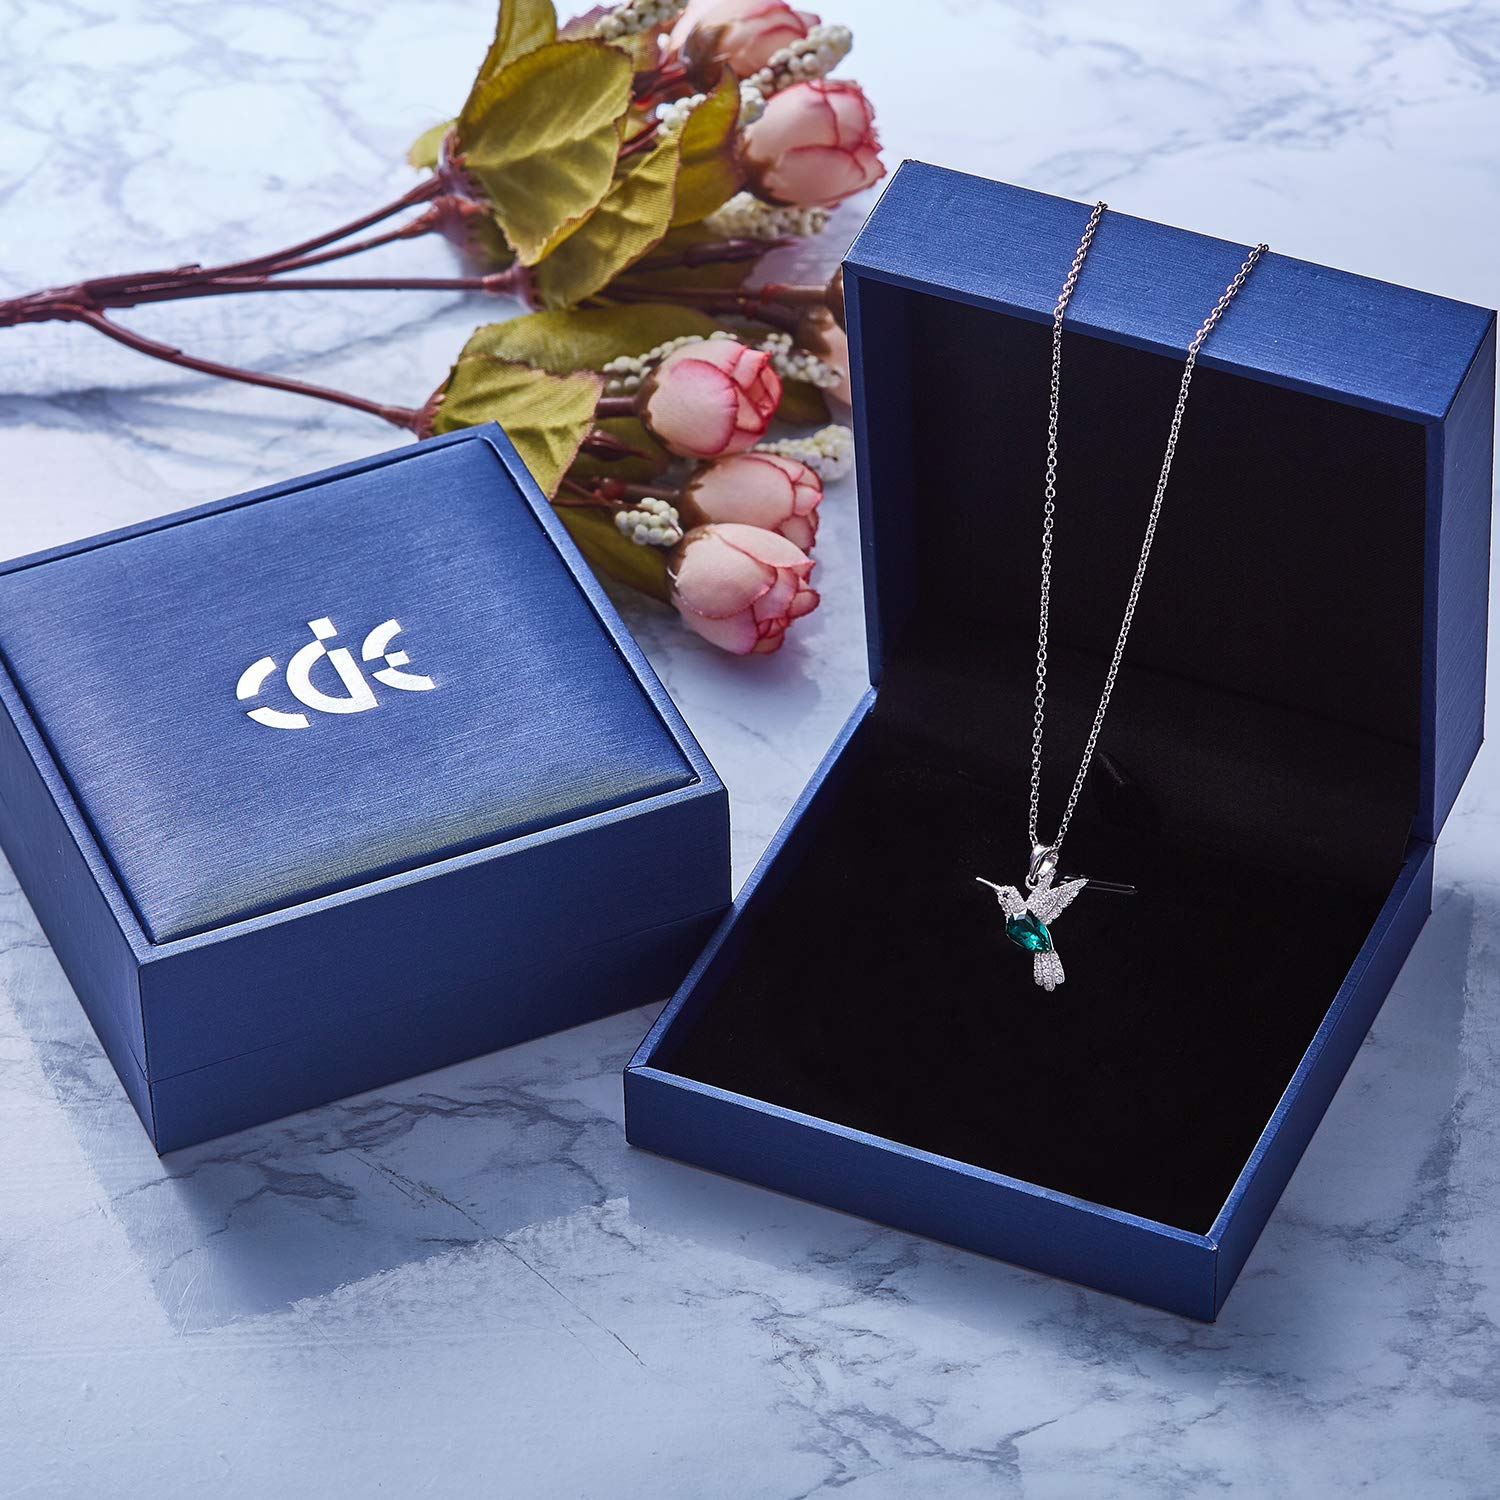 CDE S925 Sterling Silver Necklace Woman Swarovski Crystals Pendant Necklaces Hummingbird Fine Jewelry Gift for Her by CDE (Image #5)